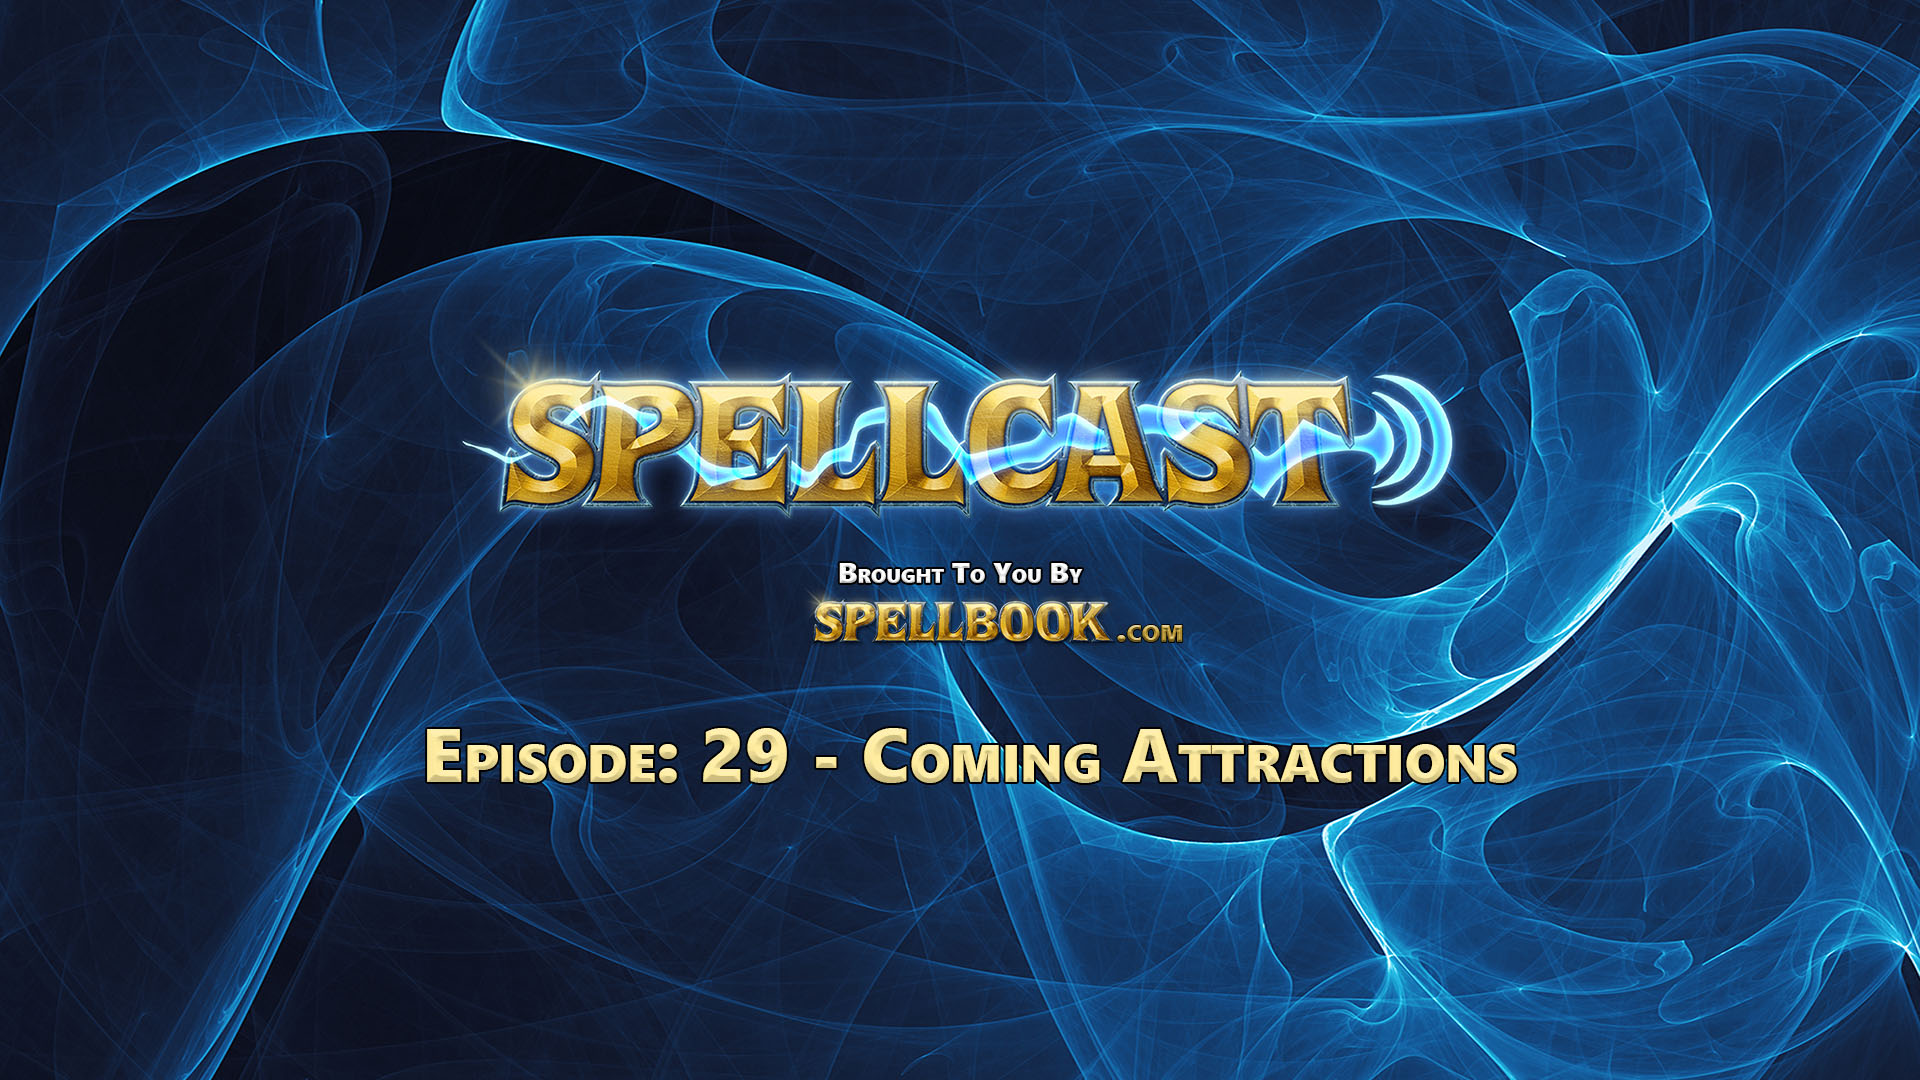 Spellcast Episode: 29 - Coming Attractions